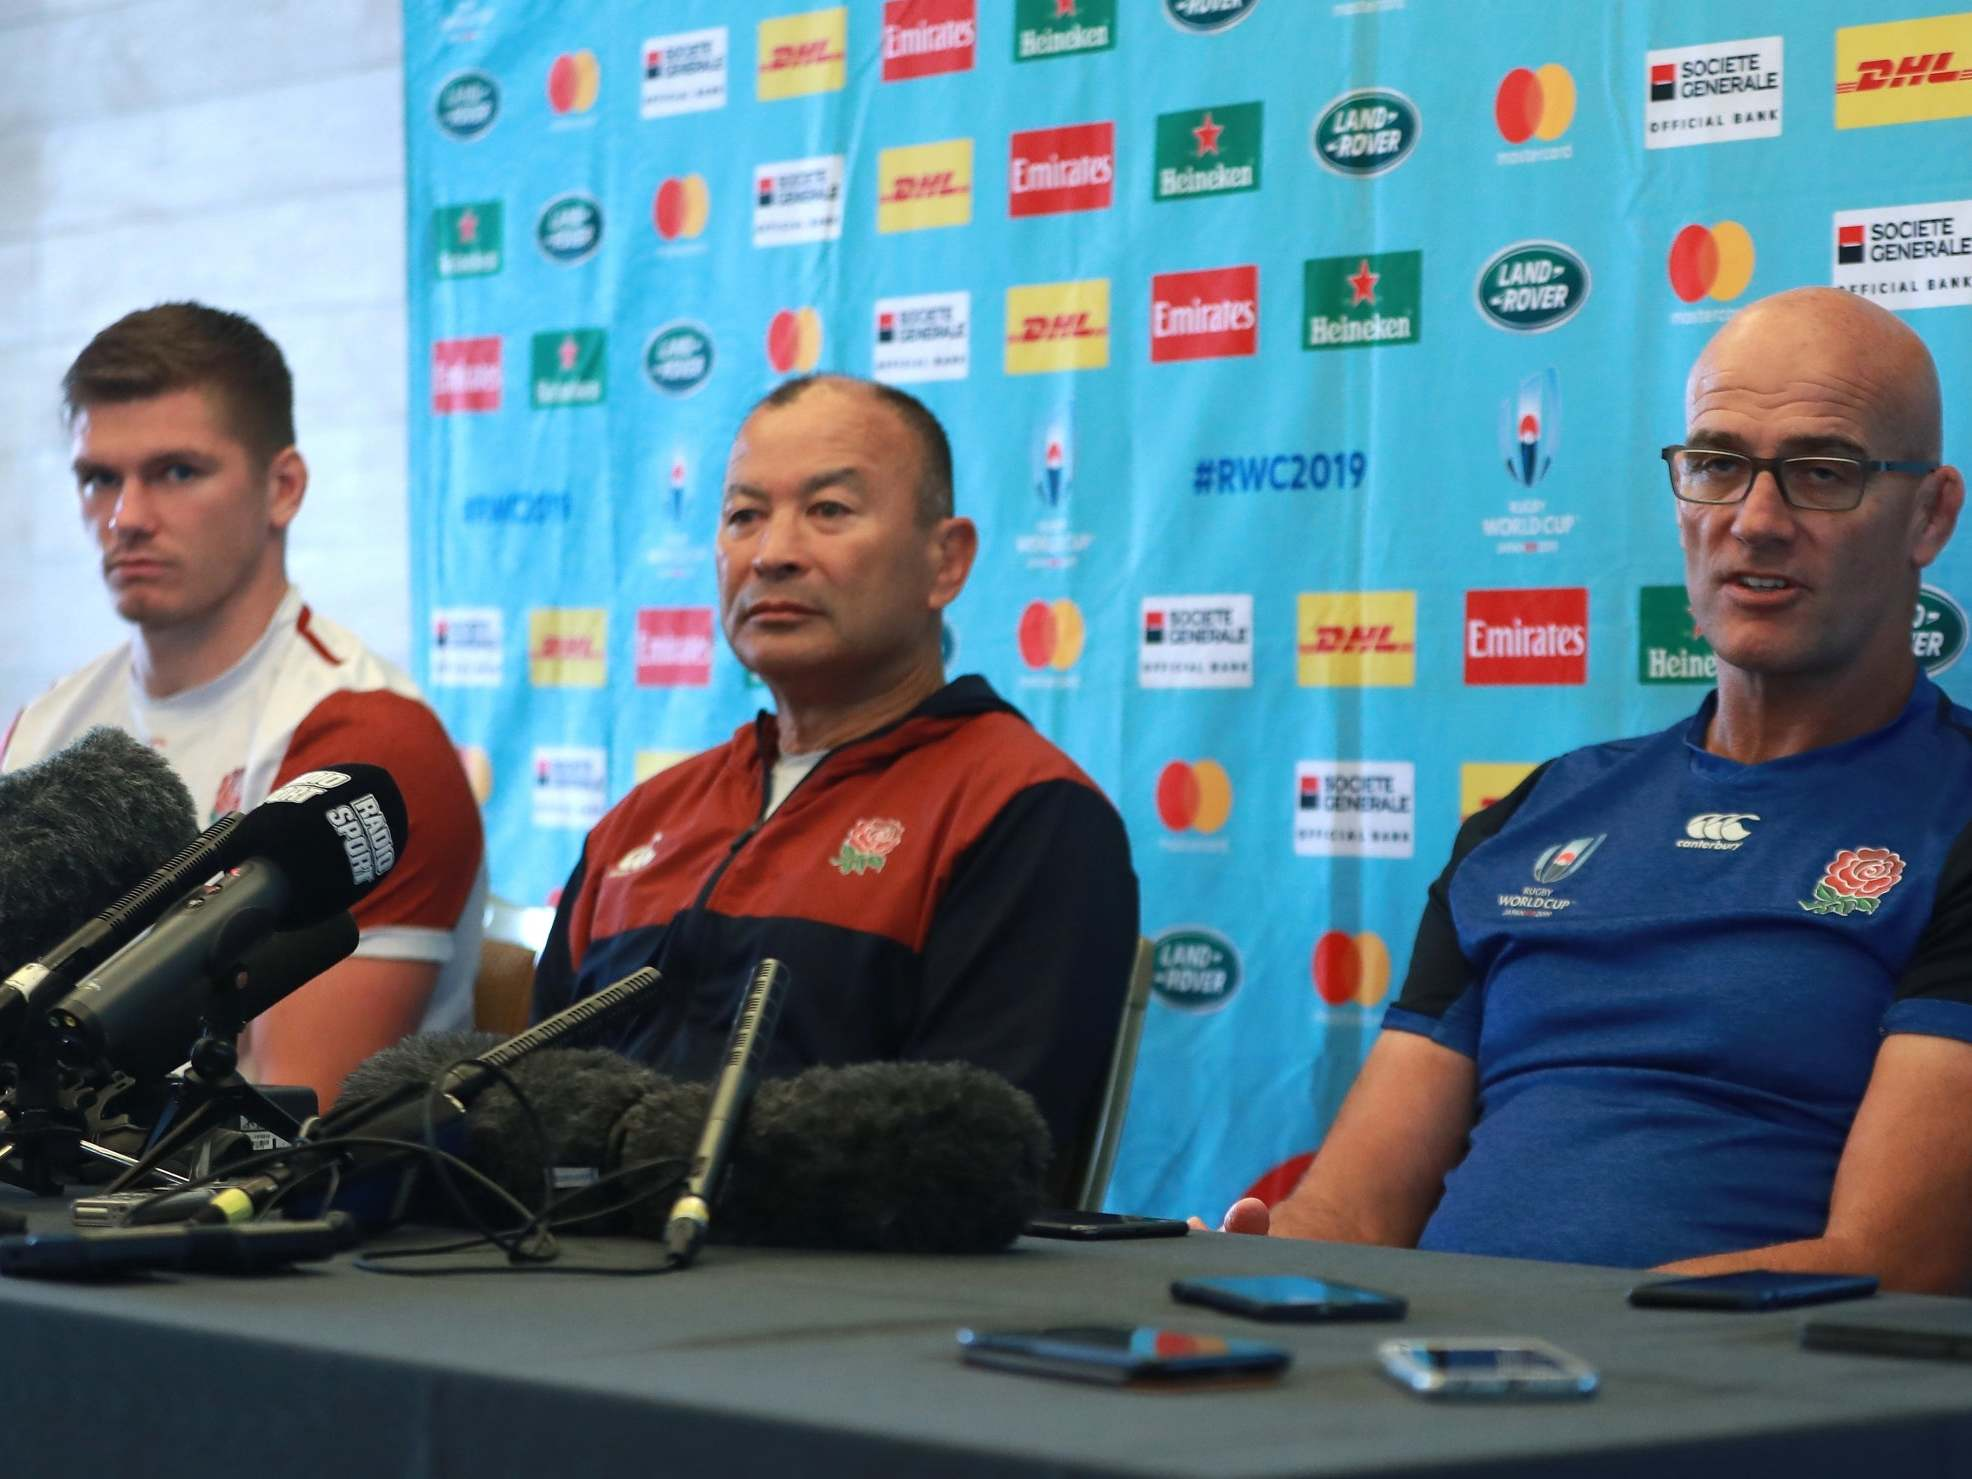 Rugby World Cup 2019: Watch Eddie Jones's extraordinary England press conference amid spying allegations